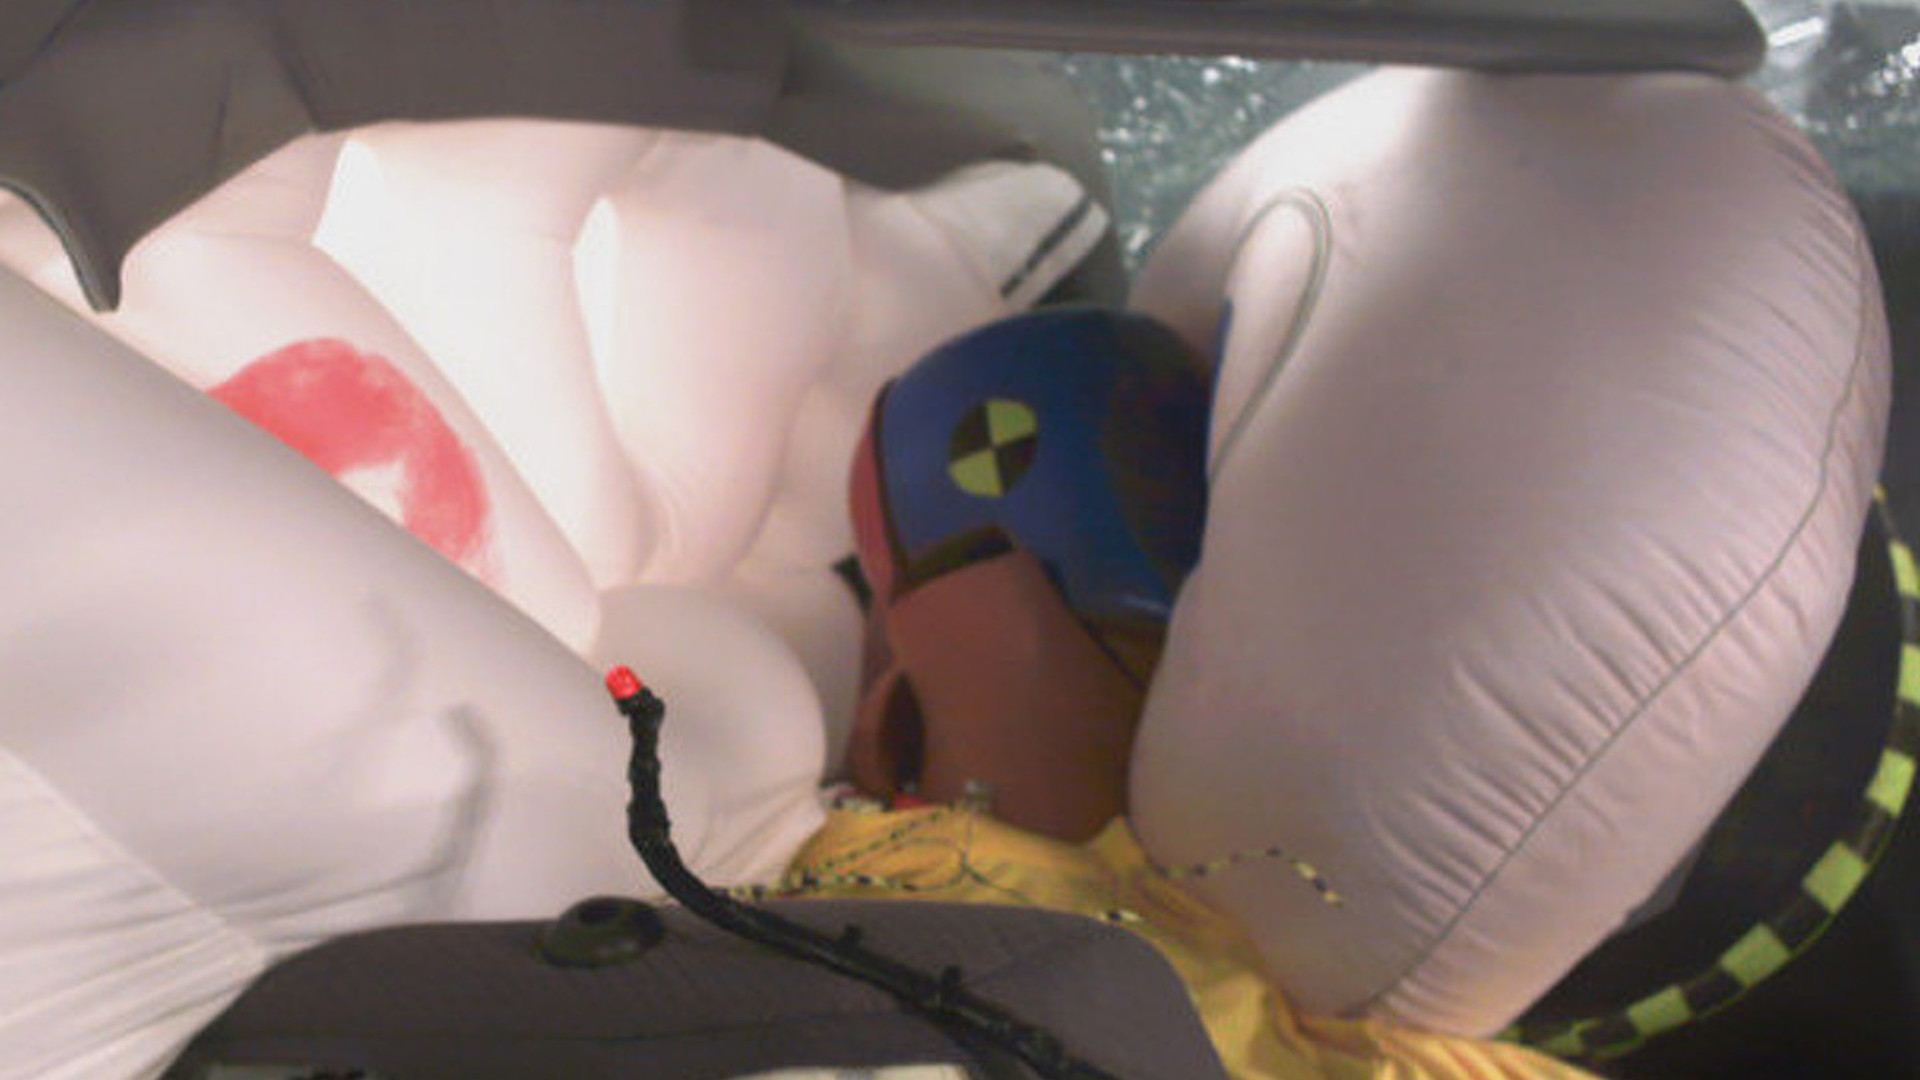 NTHSA expands Takata recall to include 35-40 million new airbags